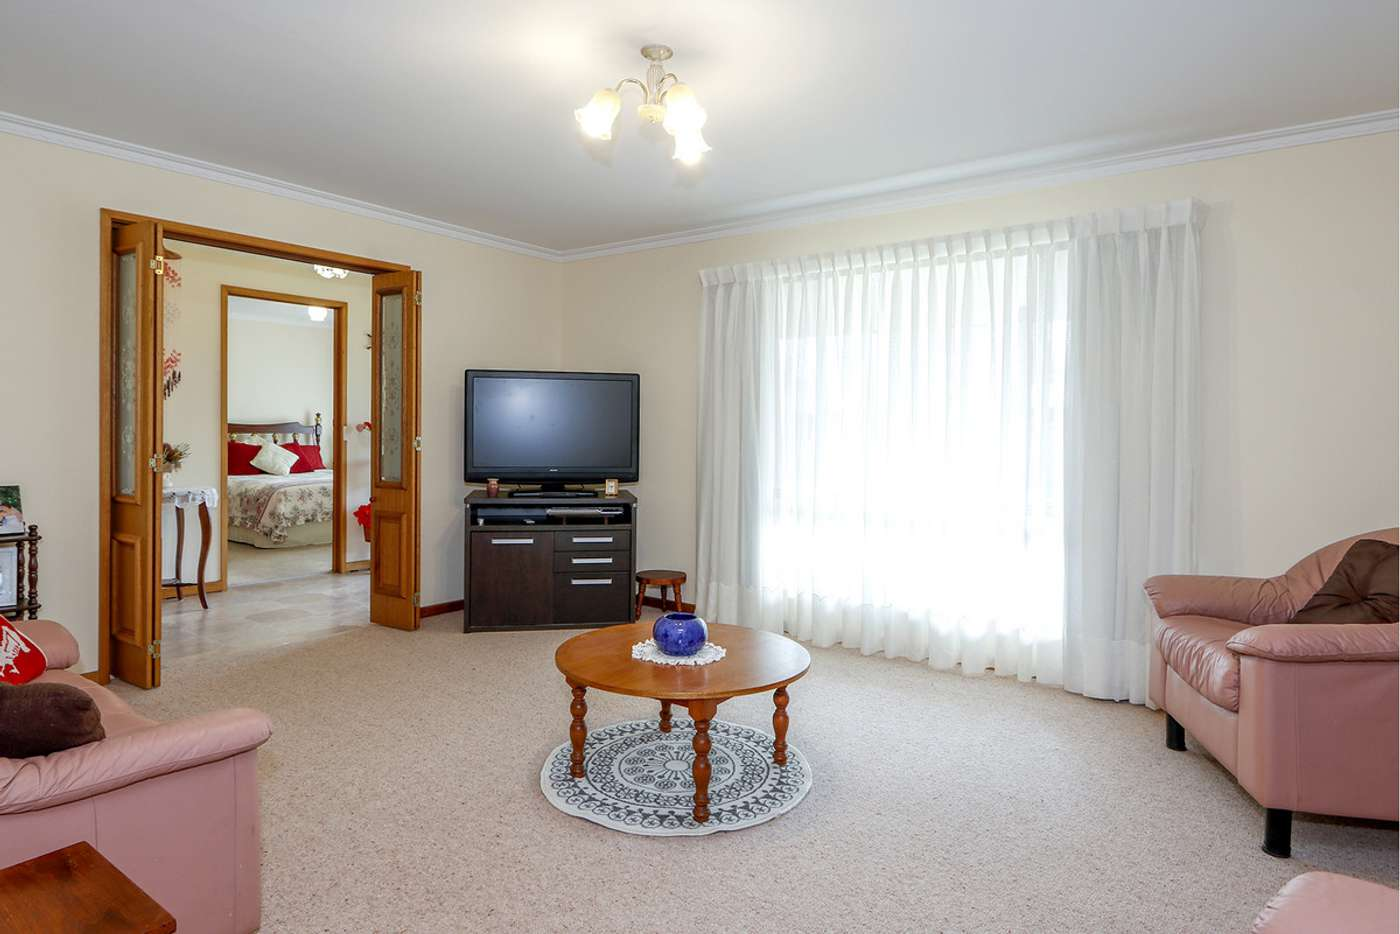 Fifth view of Homely house listing, 13 Yvette Close, Sale VIC 3850